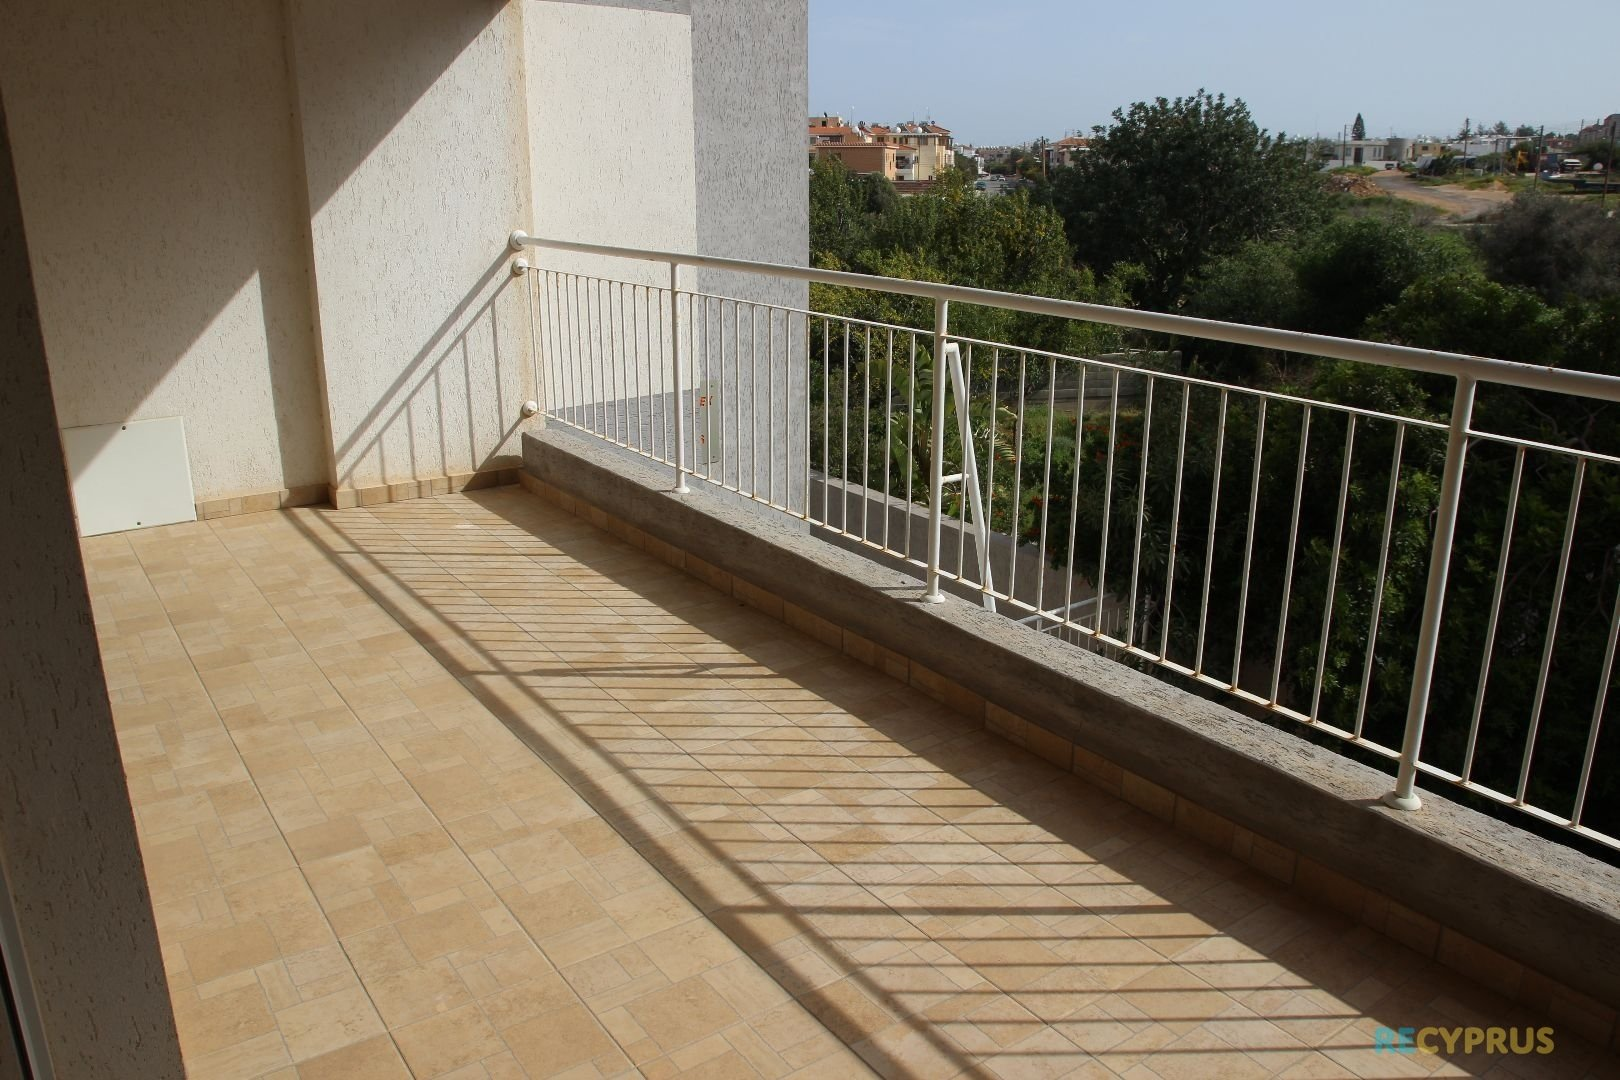 Apartment for sale Kapparis Famagusta Cyprus 11 3519